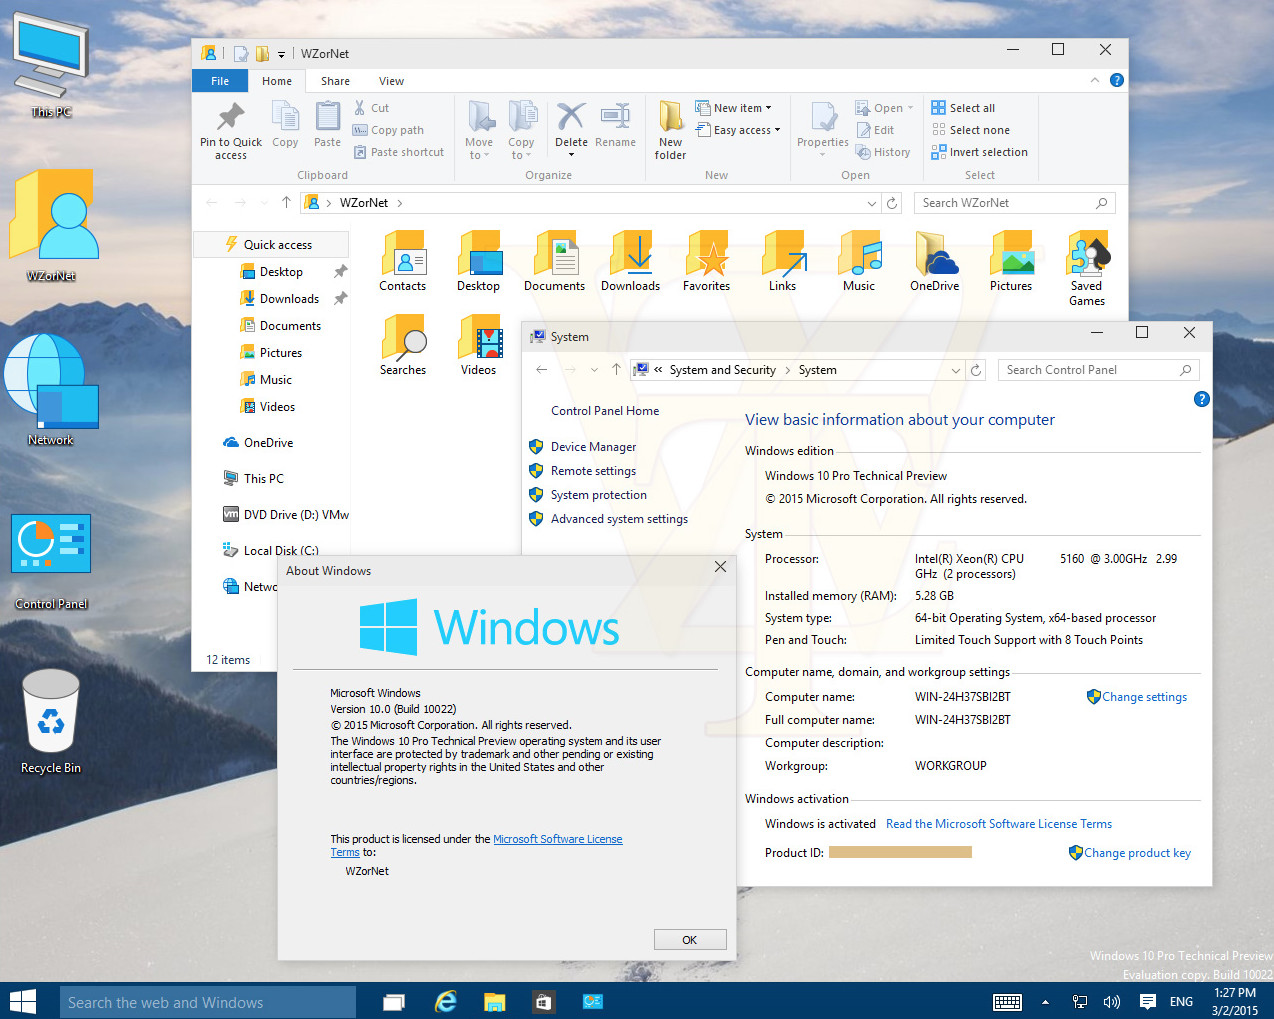 More screenshots of Windows 10 build 10022 leak on to the web